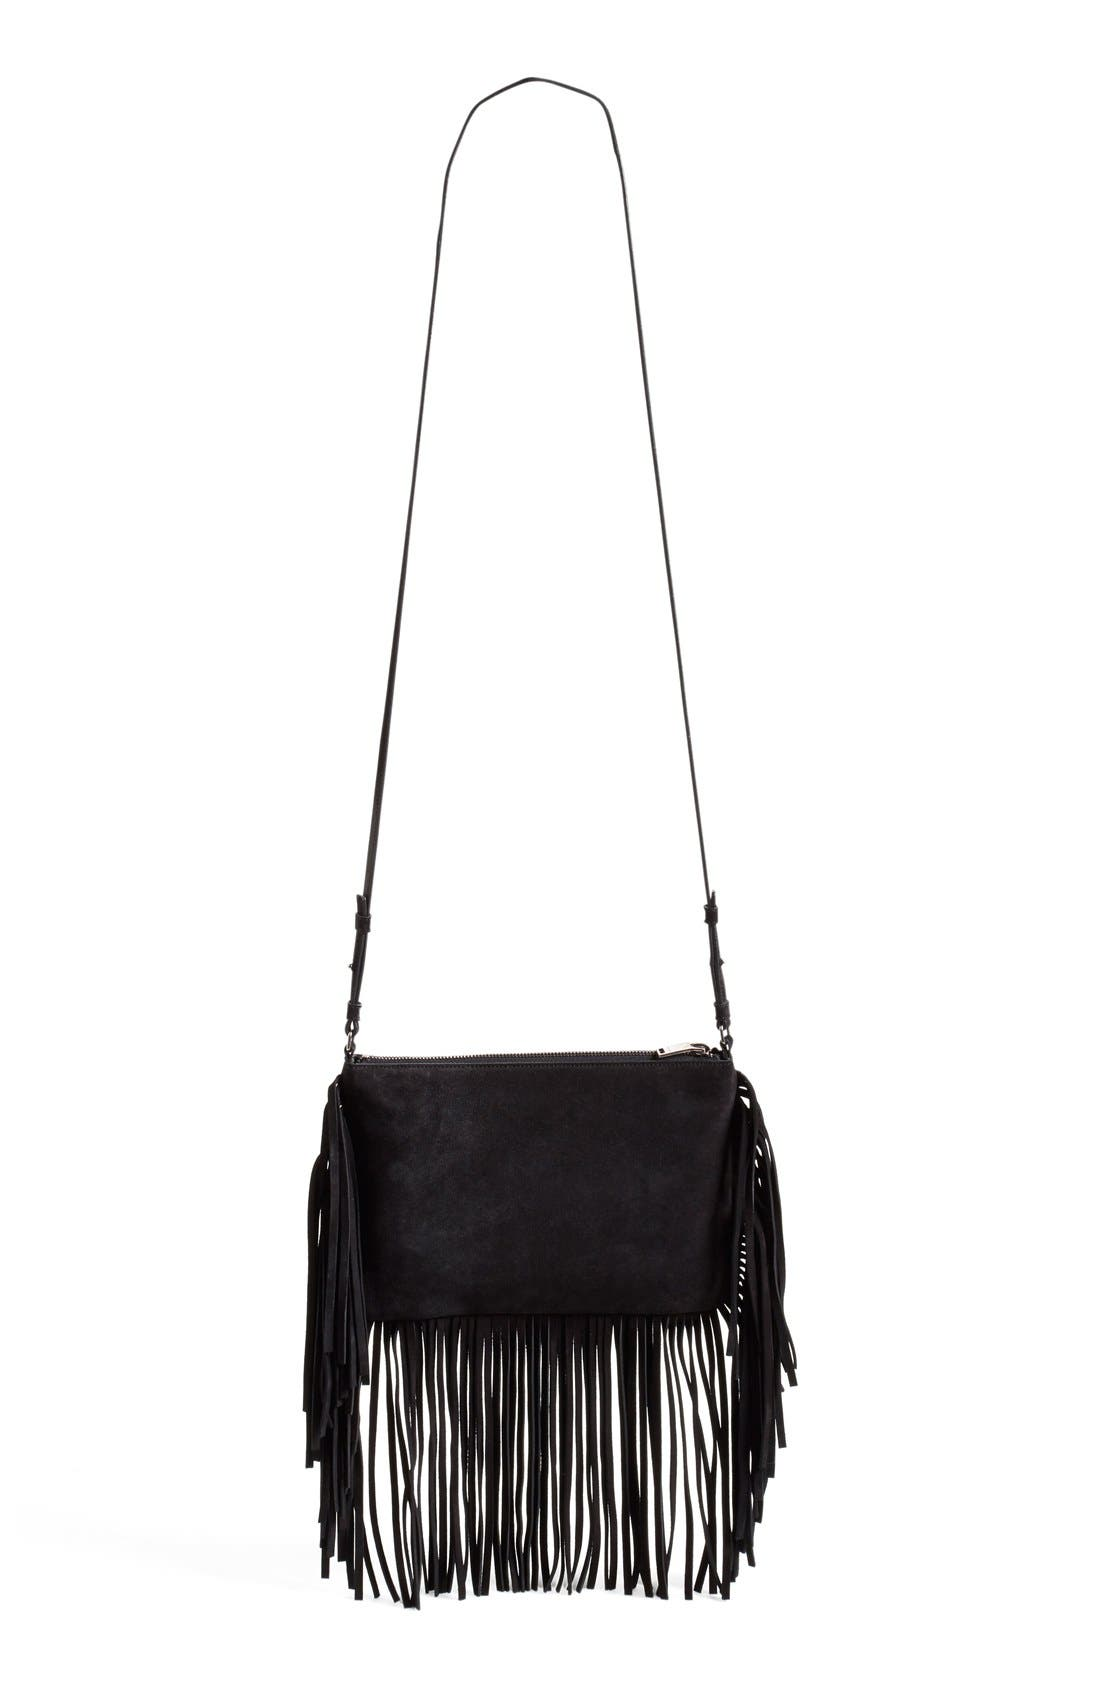 Fringe Suede Crossbody Bag,                             Alternate thumbnail 3, color,                             001